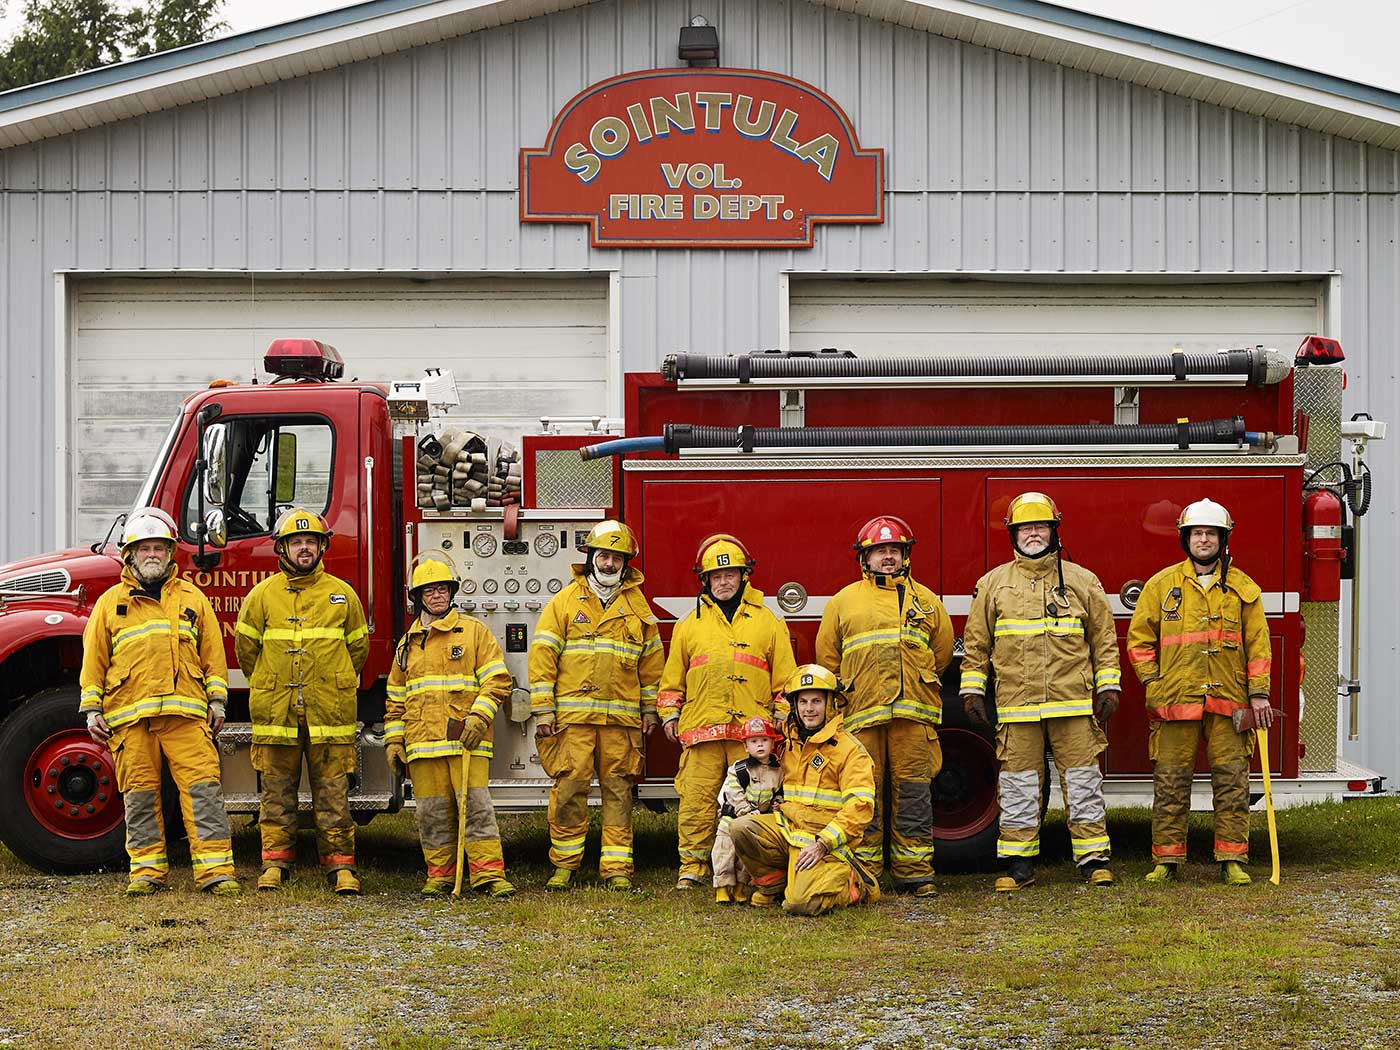 Sointula Volunteer Fire Department.